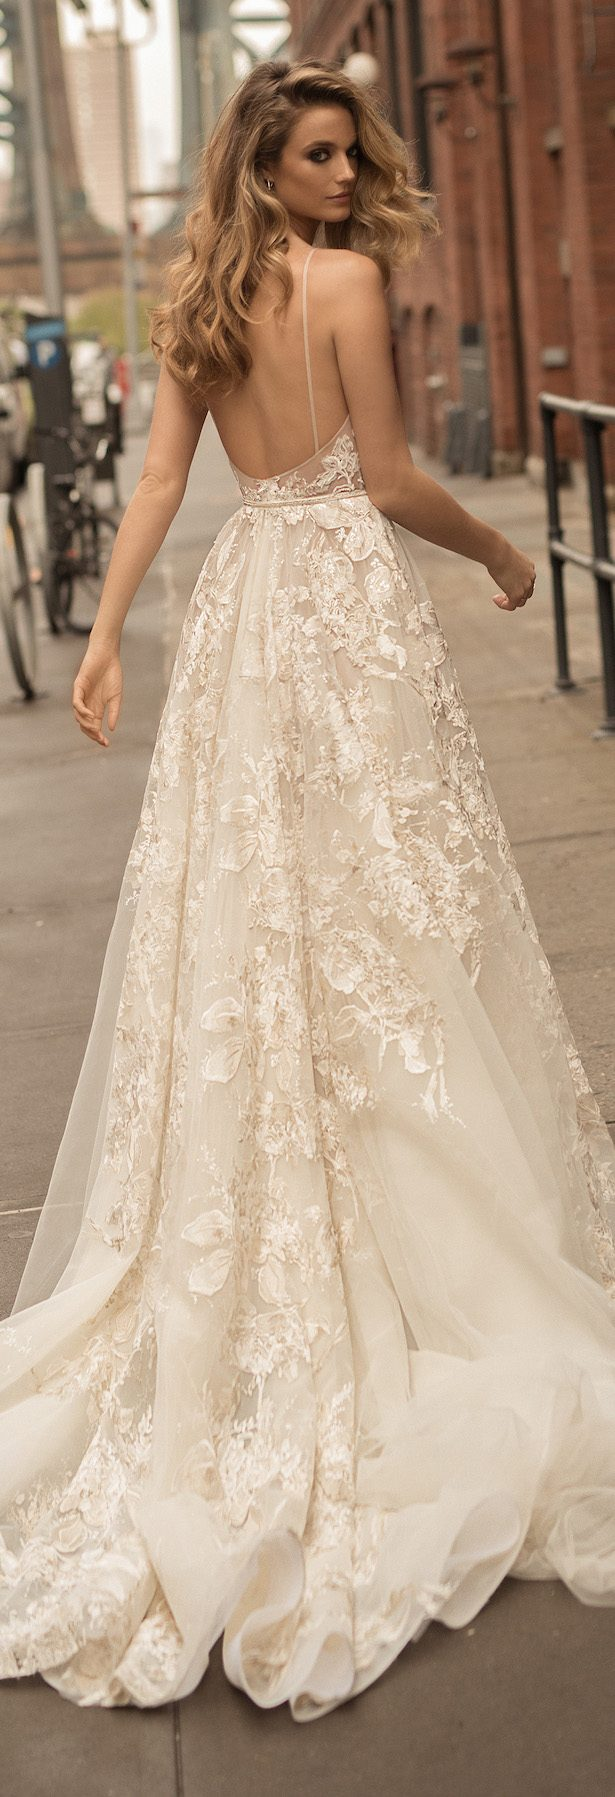 Best Wedding Dresses of 2017 - Berta Wedding Dress Collection Spring 2018